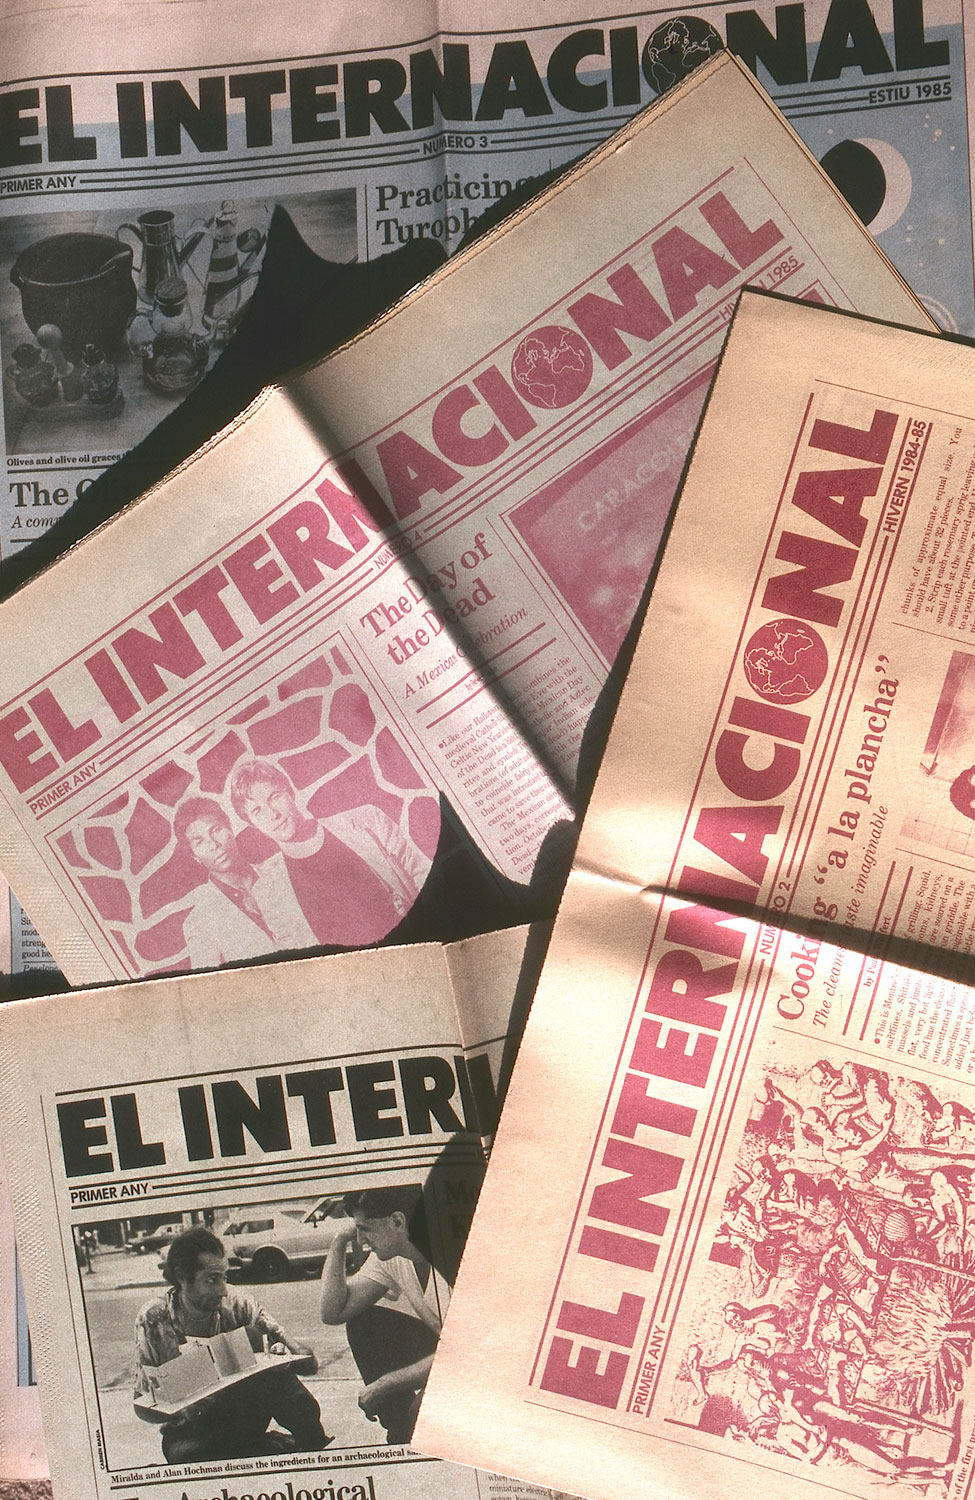 El-Internacional-Newspaper-001991